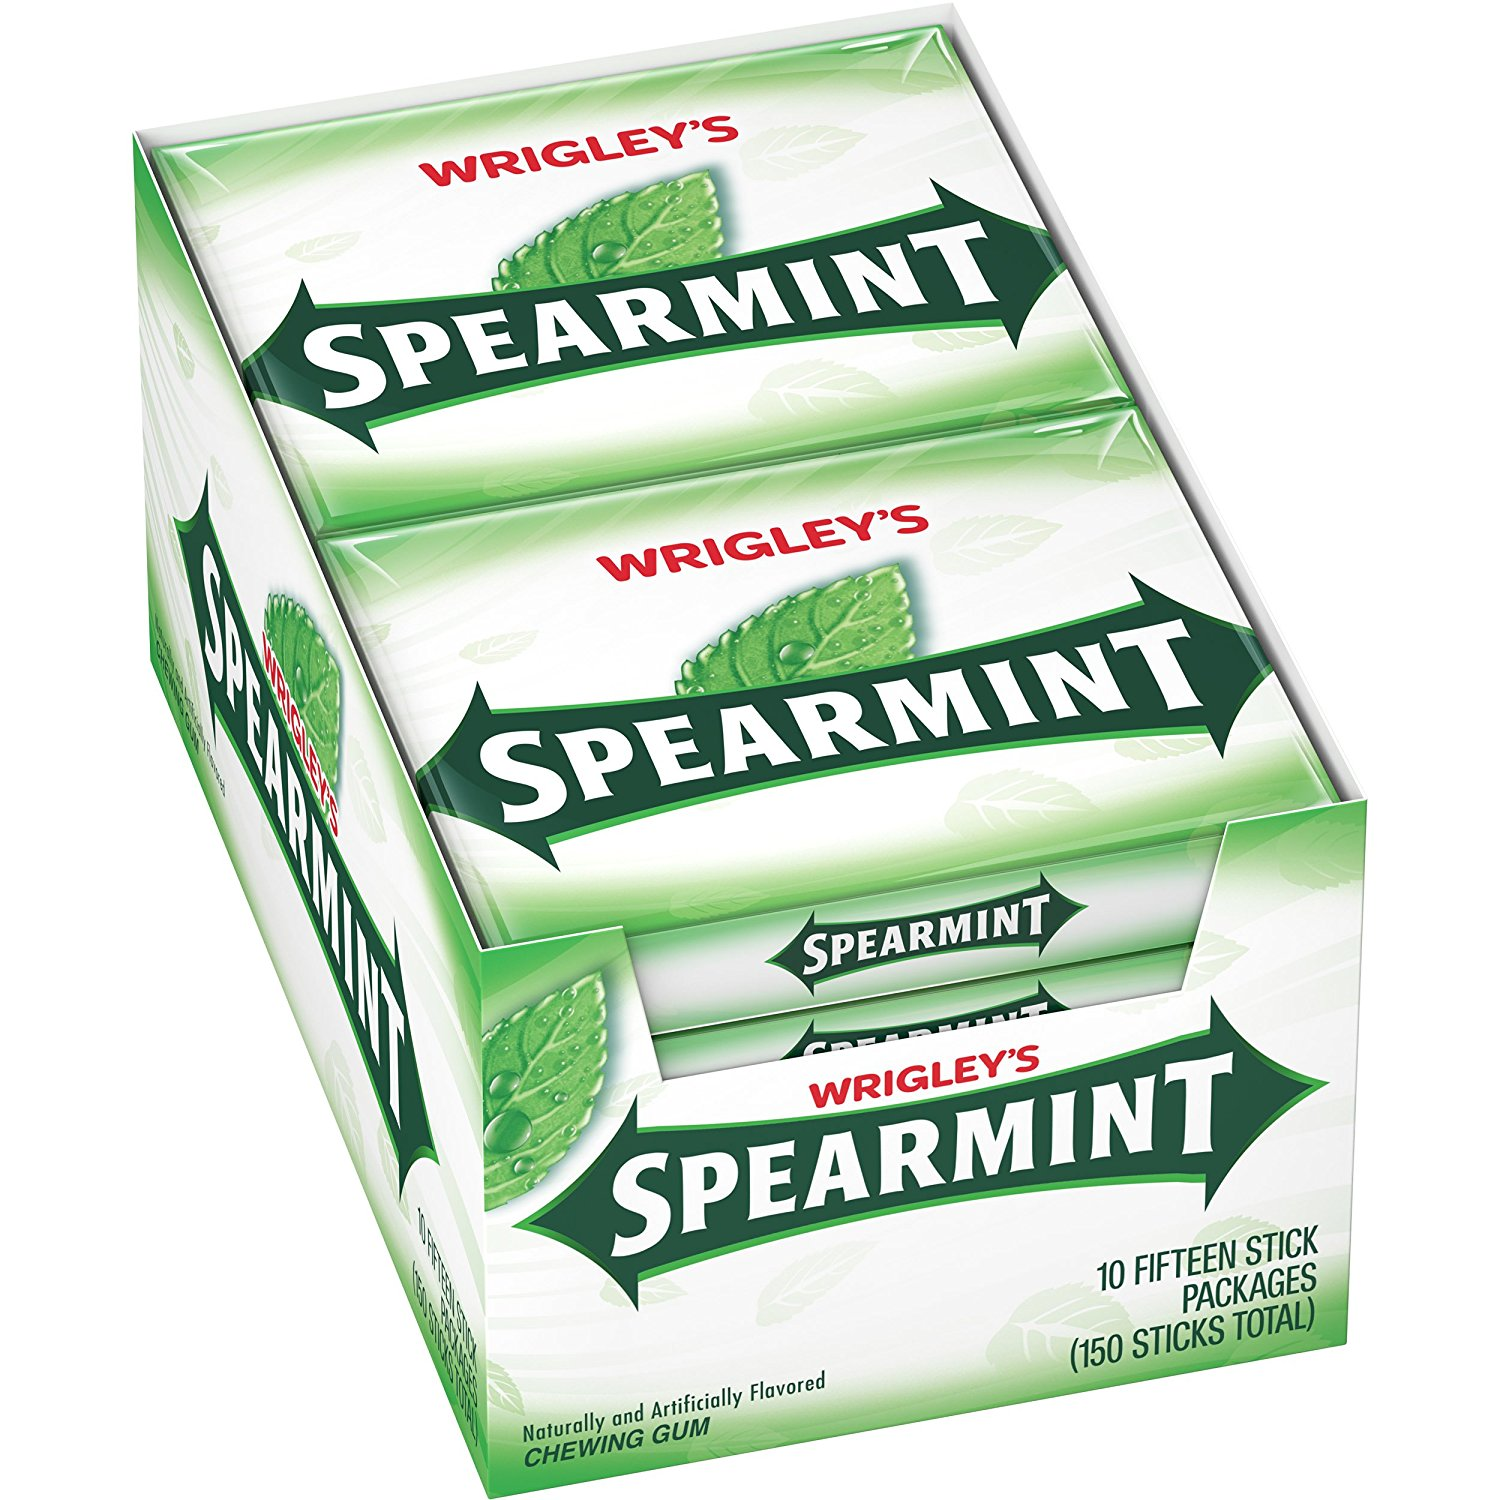 Wrigleys Spearmint Chewing Gum, 10 Pack Each Contains 15 Count Sticks - 1 Box